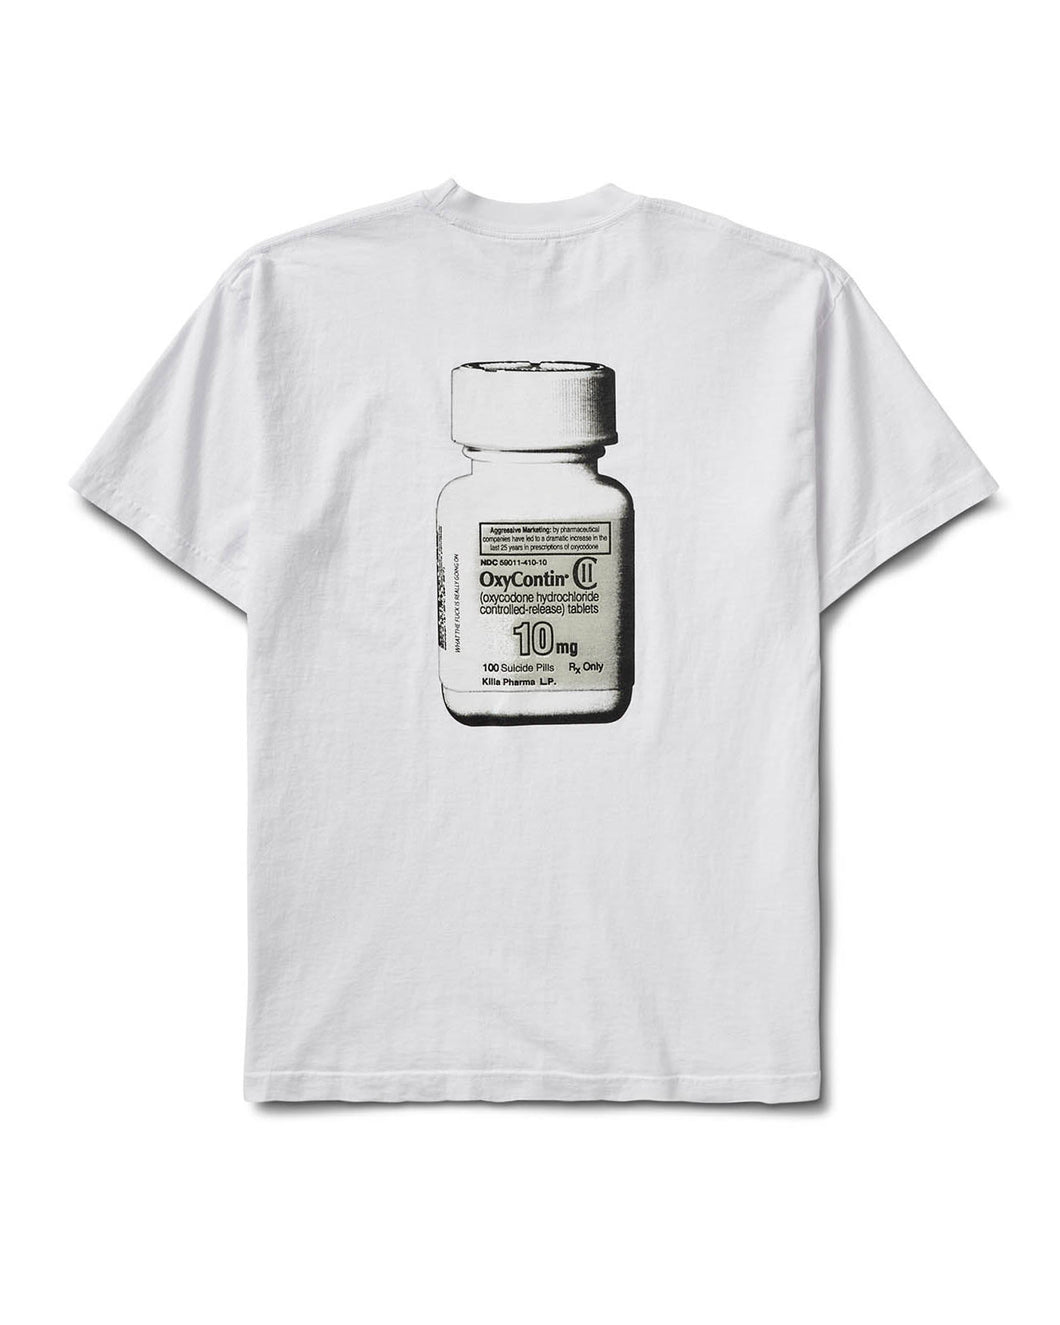 Bad Pharma Tee White